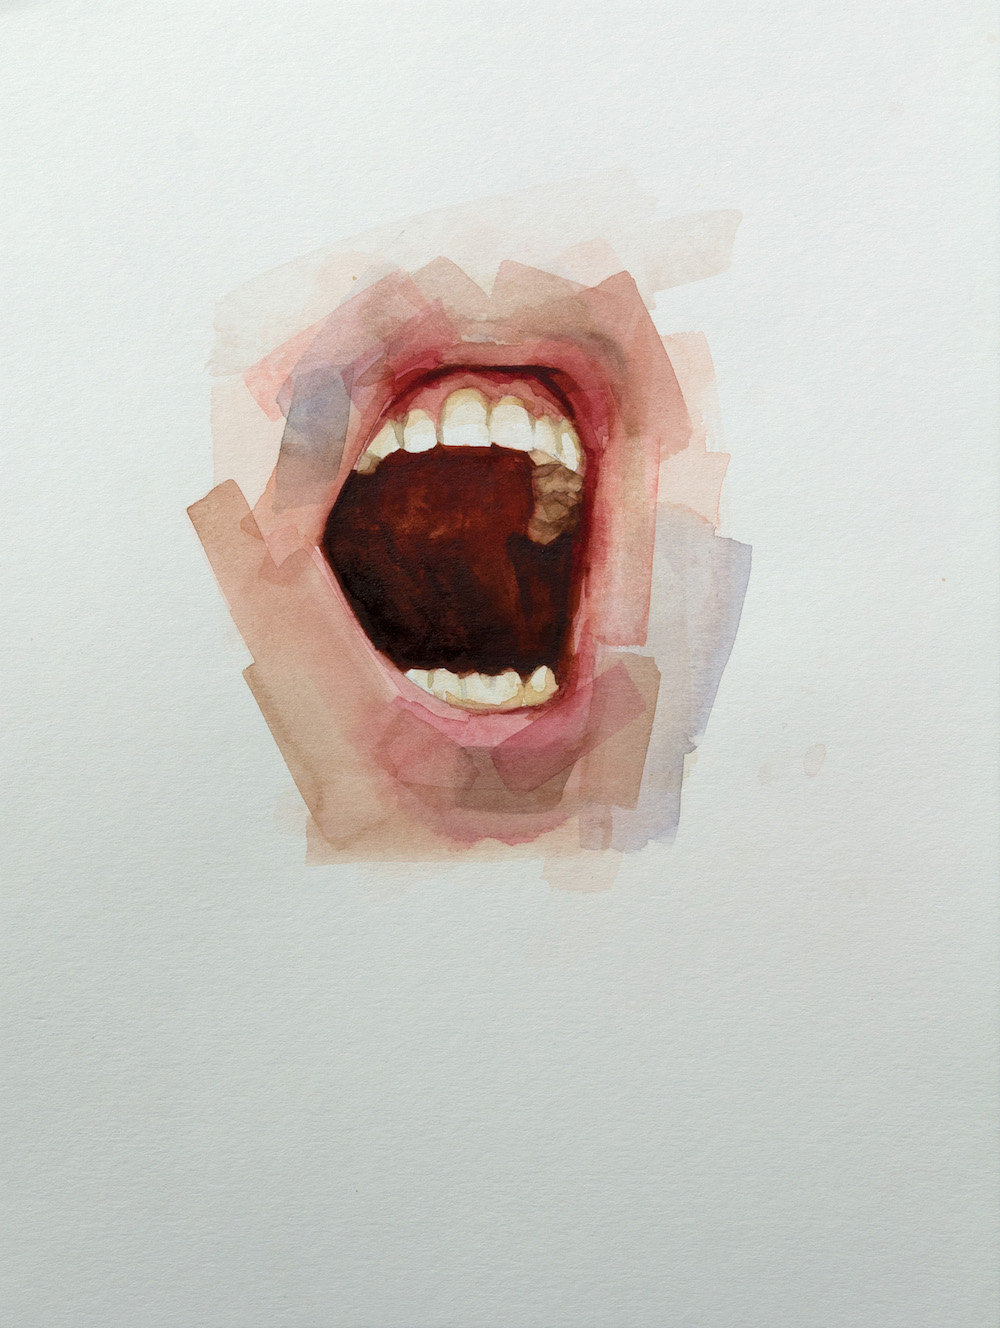 Mouth study   12 x 9 inches  watercolour on paper - SOLD